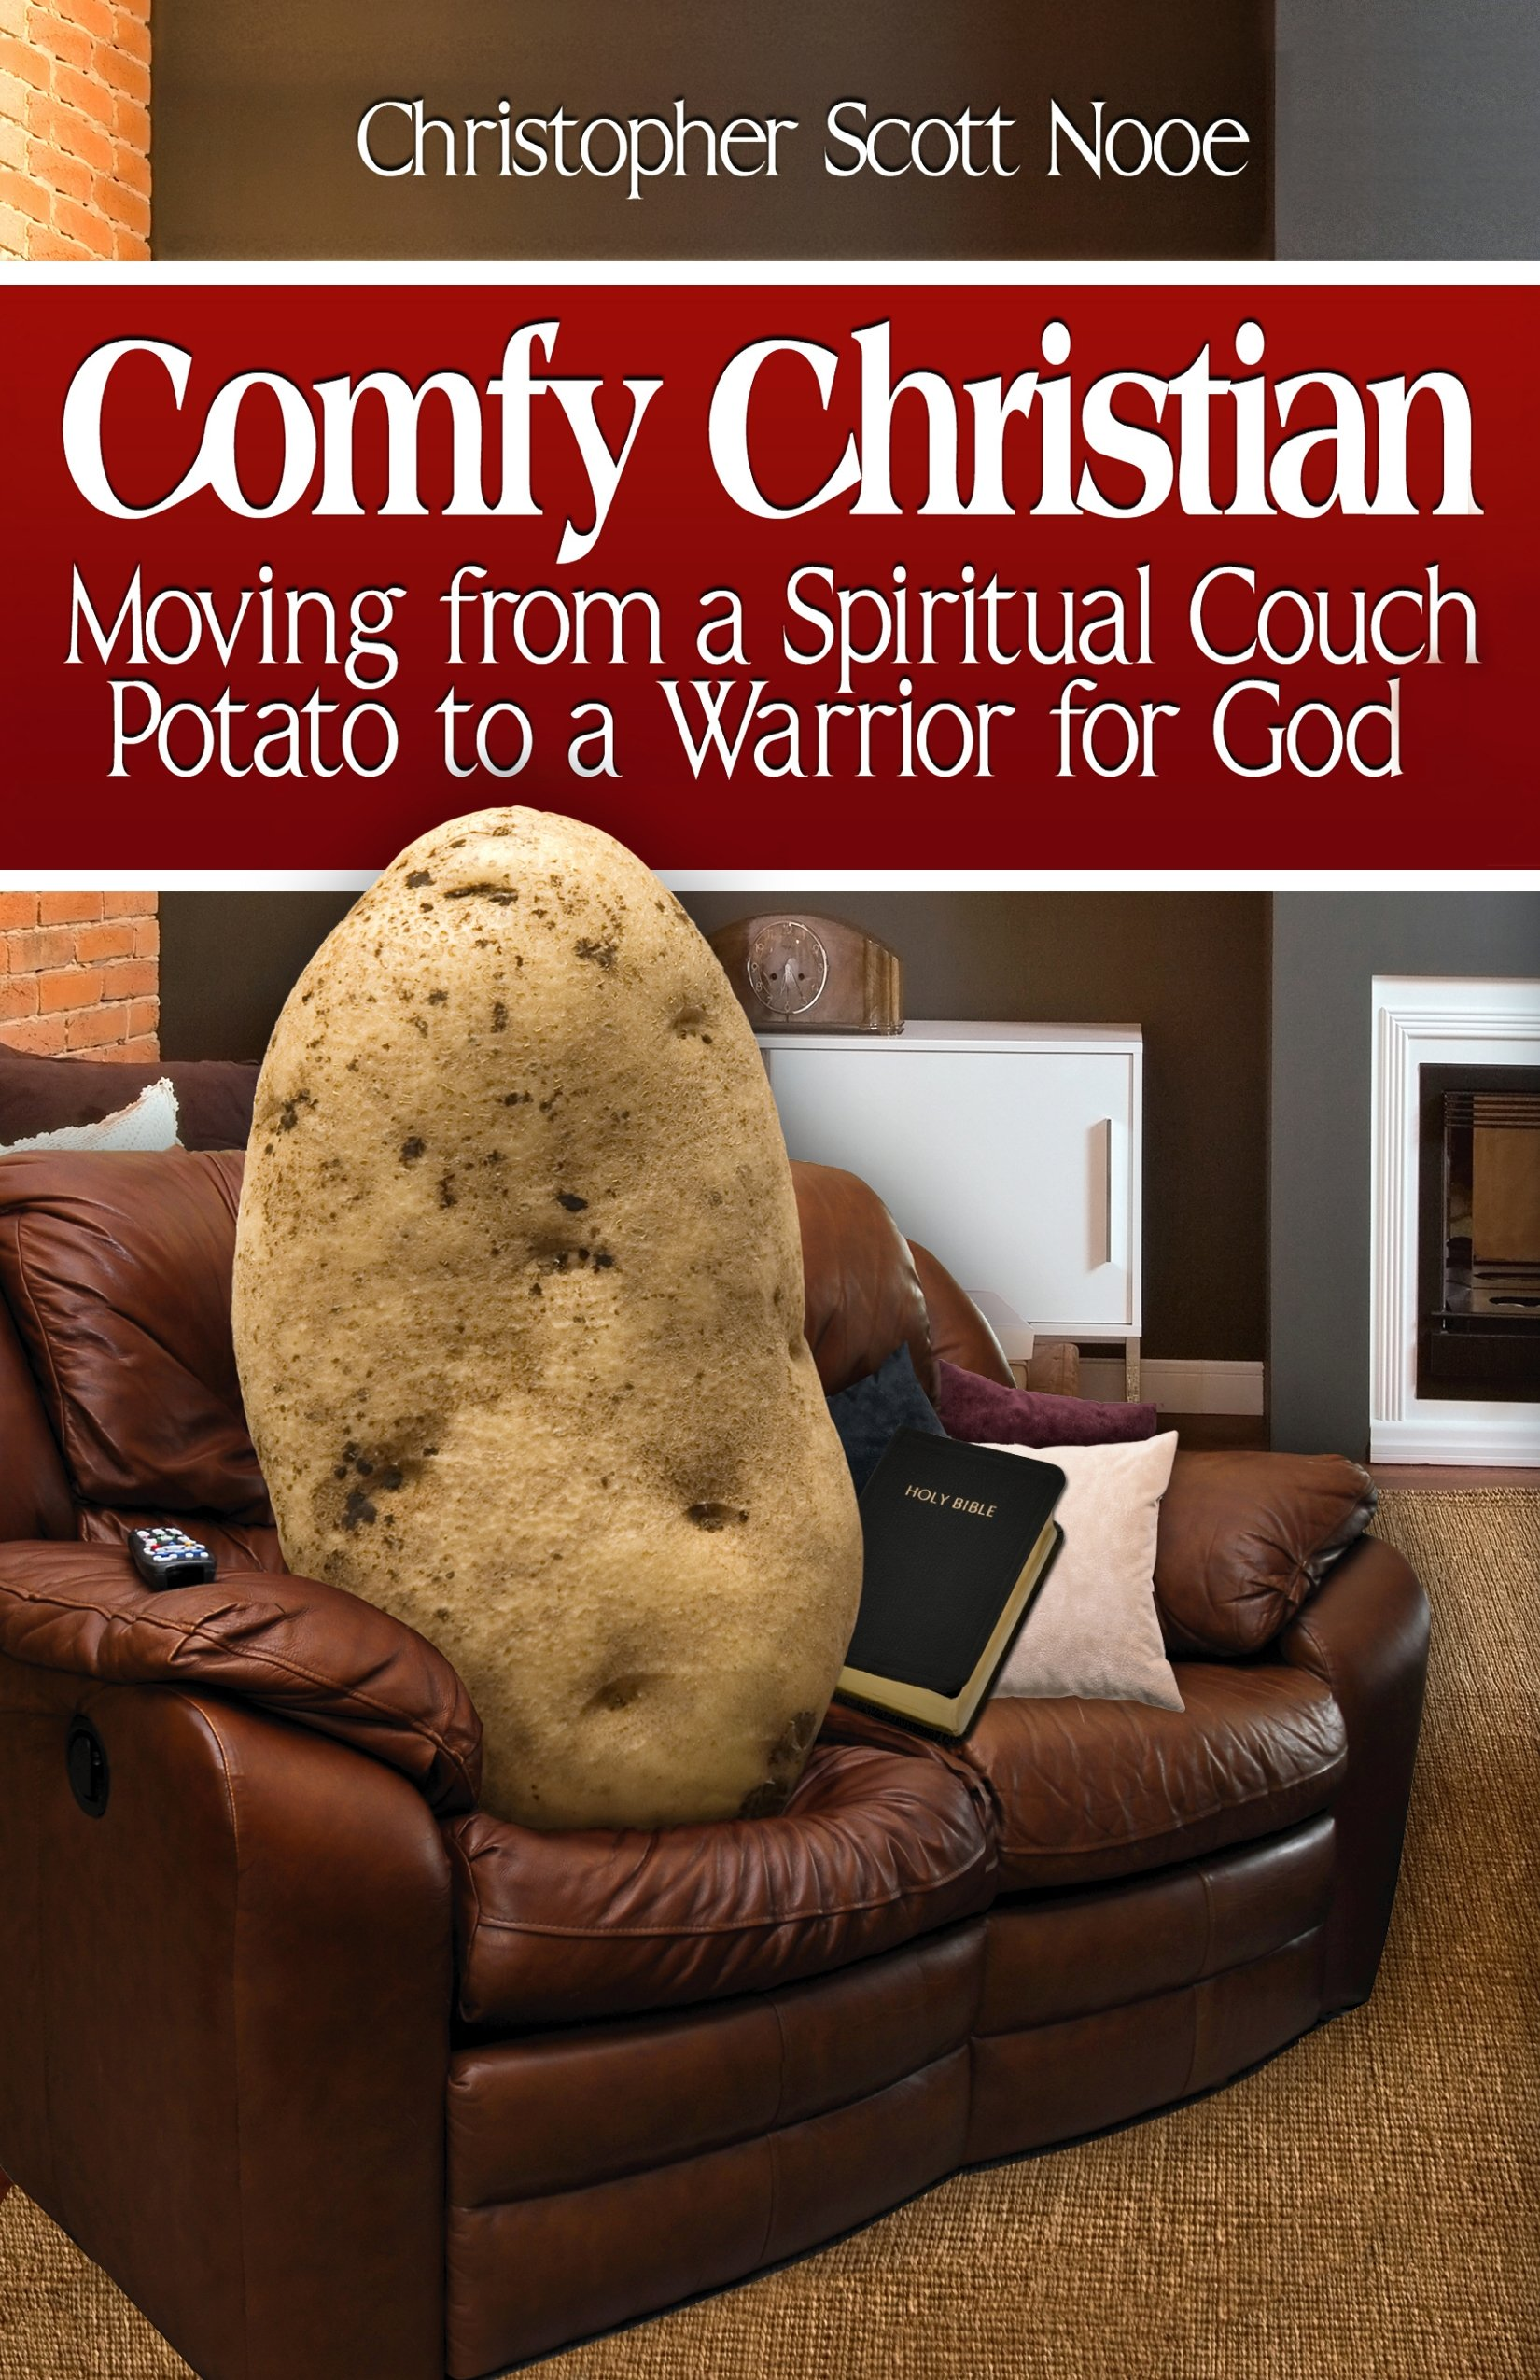 fy Christian Moving from a Spiritual Couch Potato to a Warrior